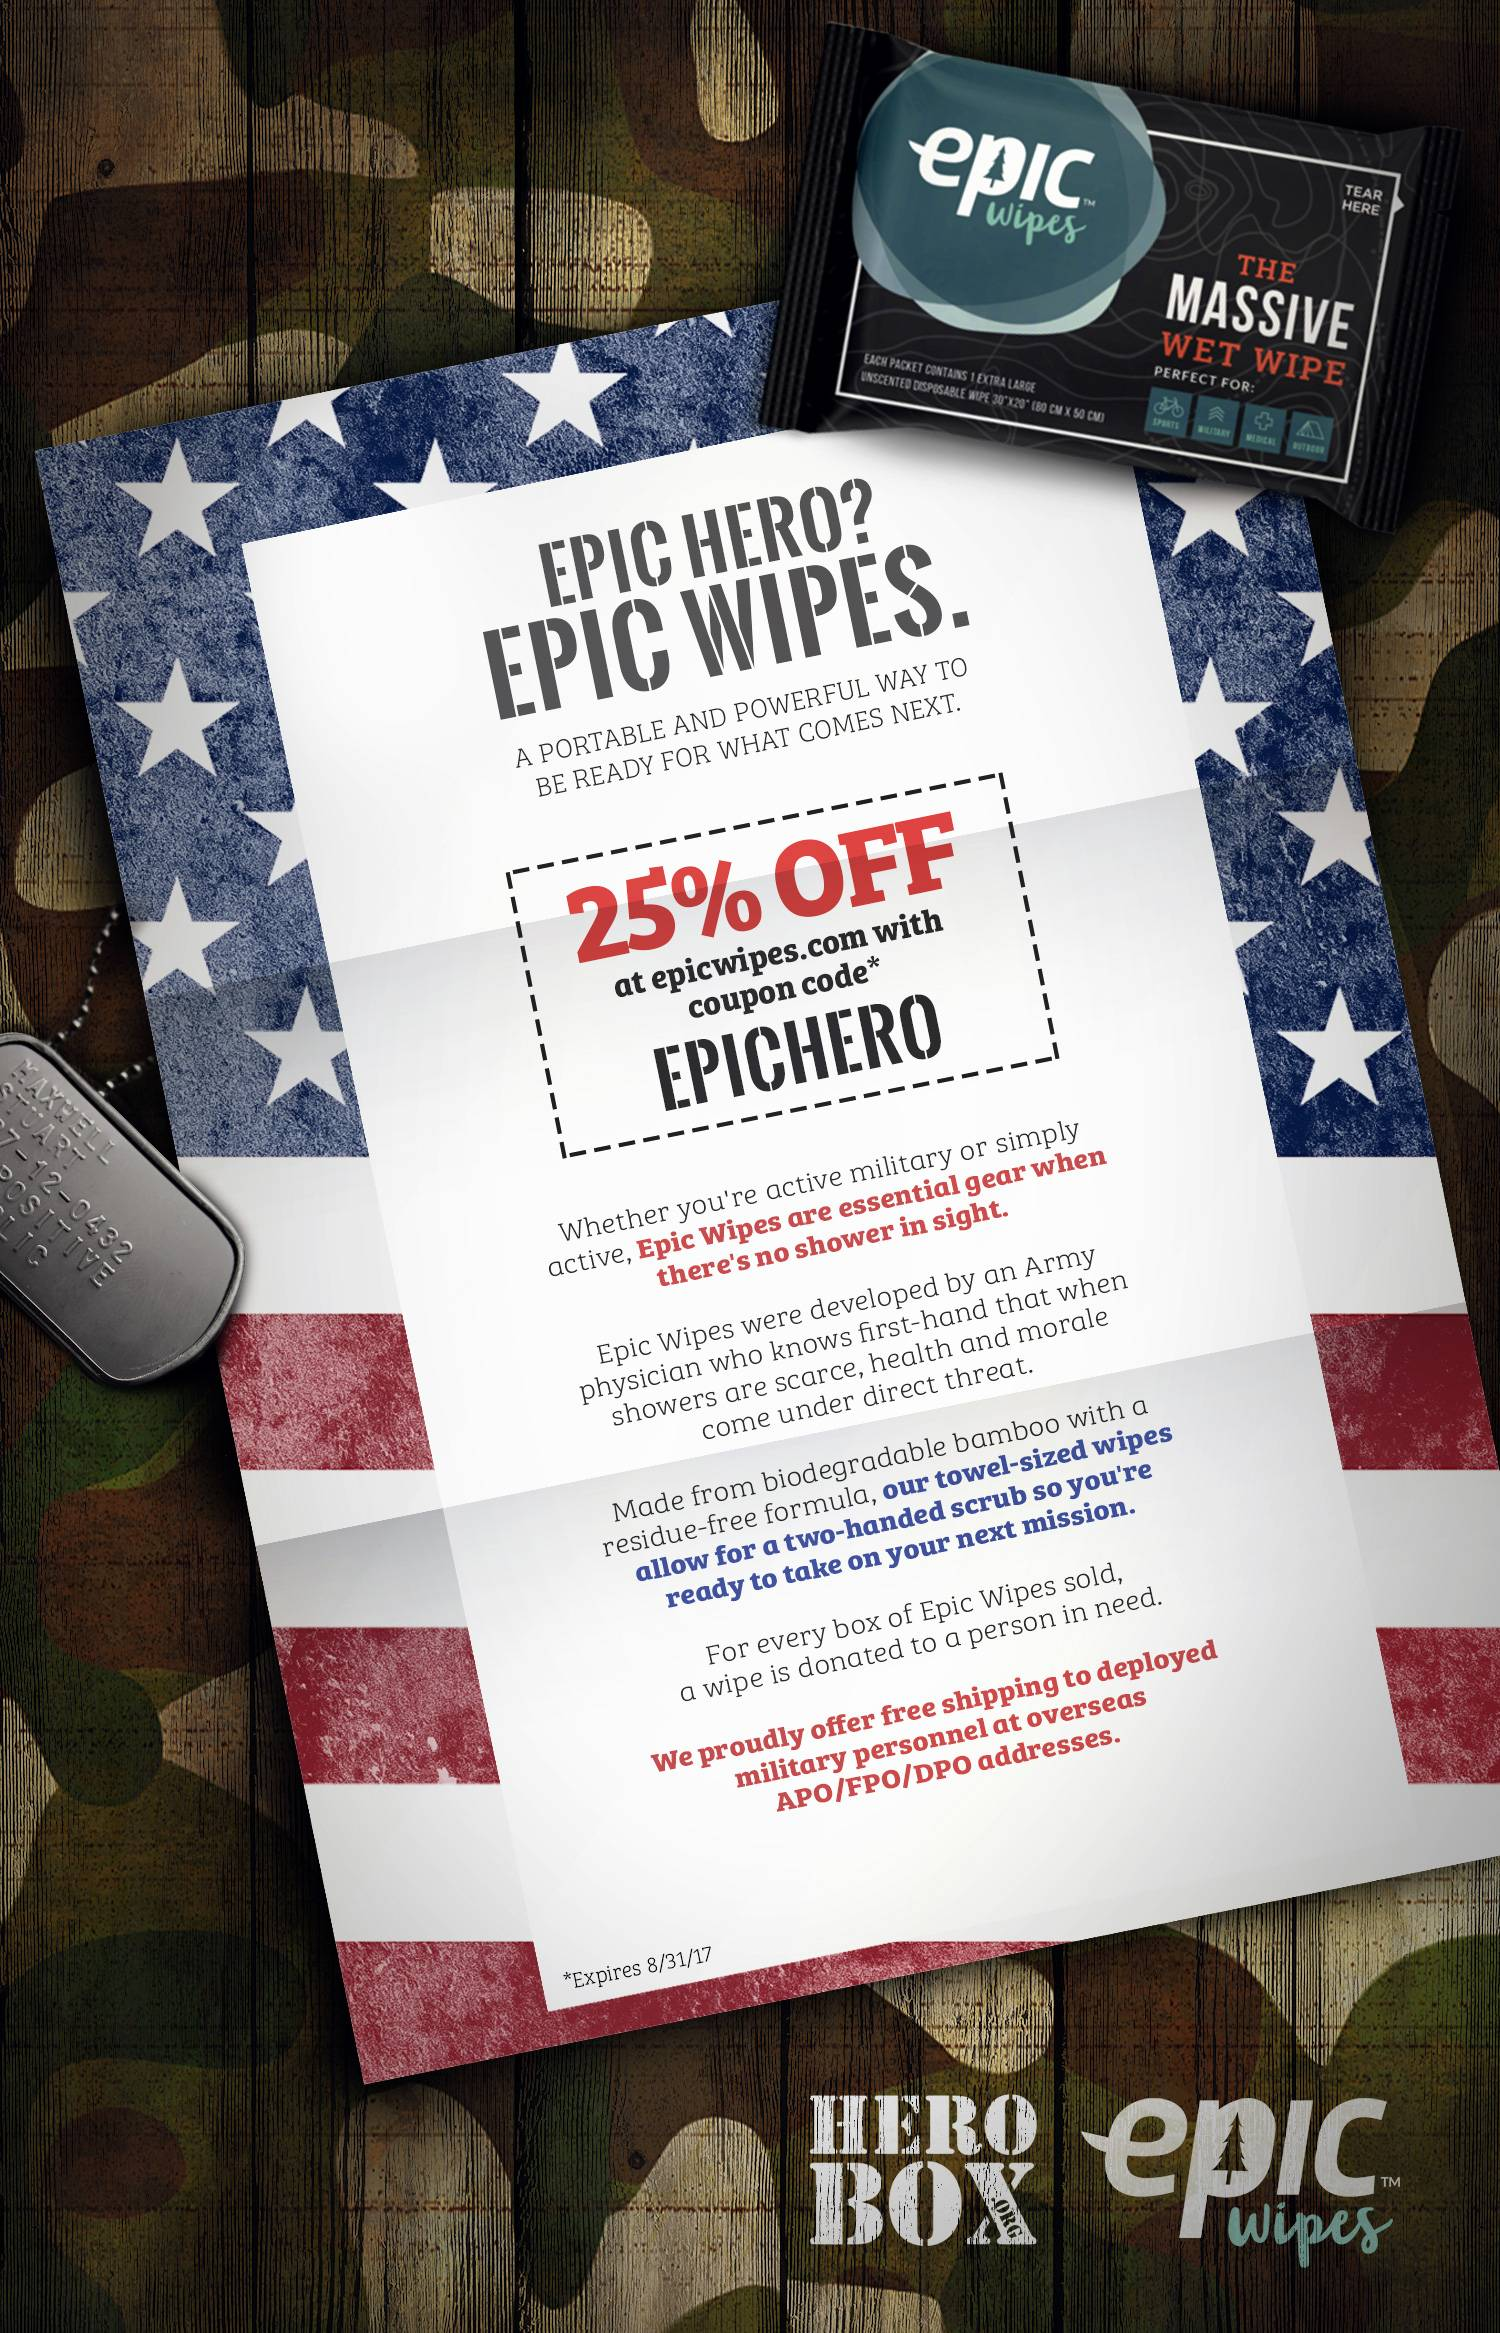 Epic Wipes Partnership!